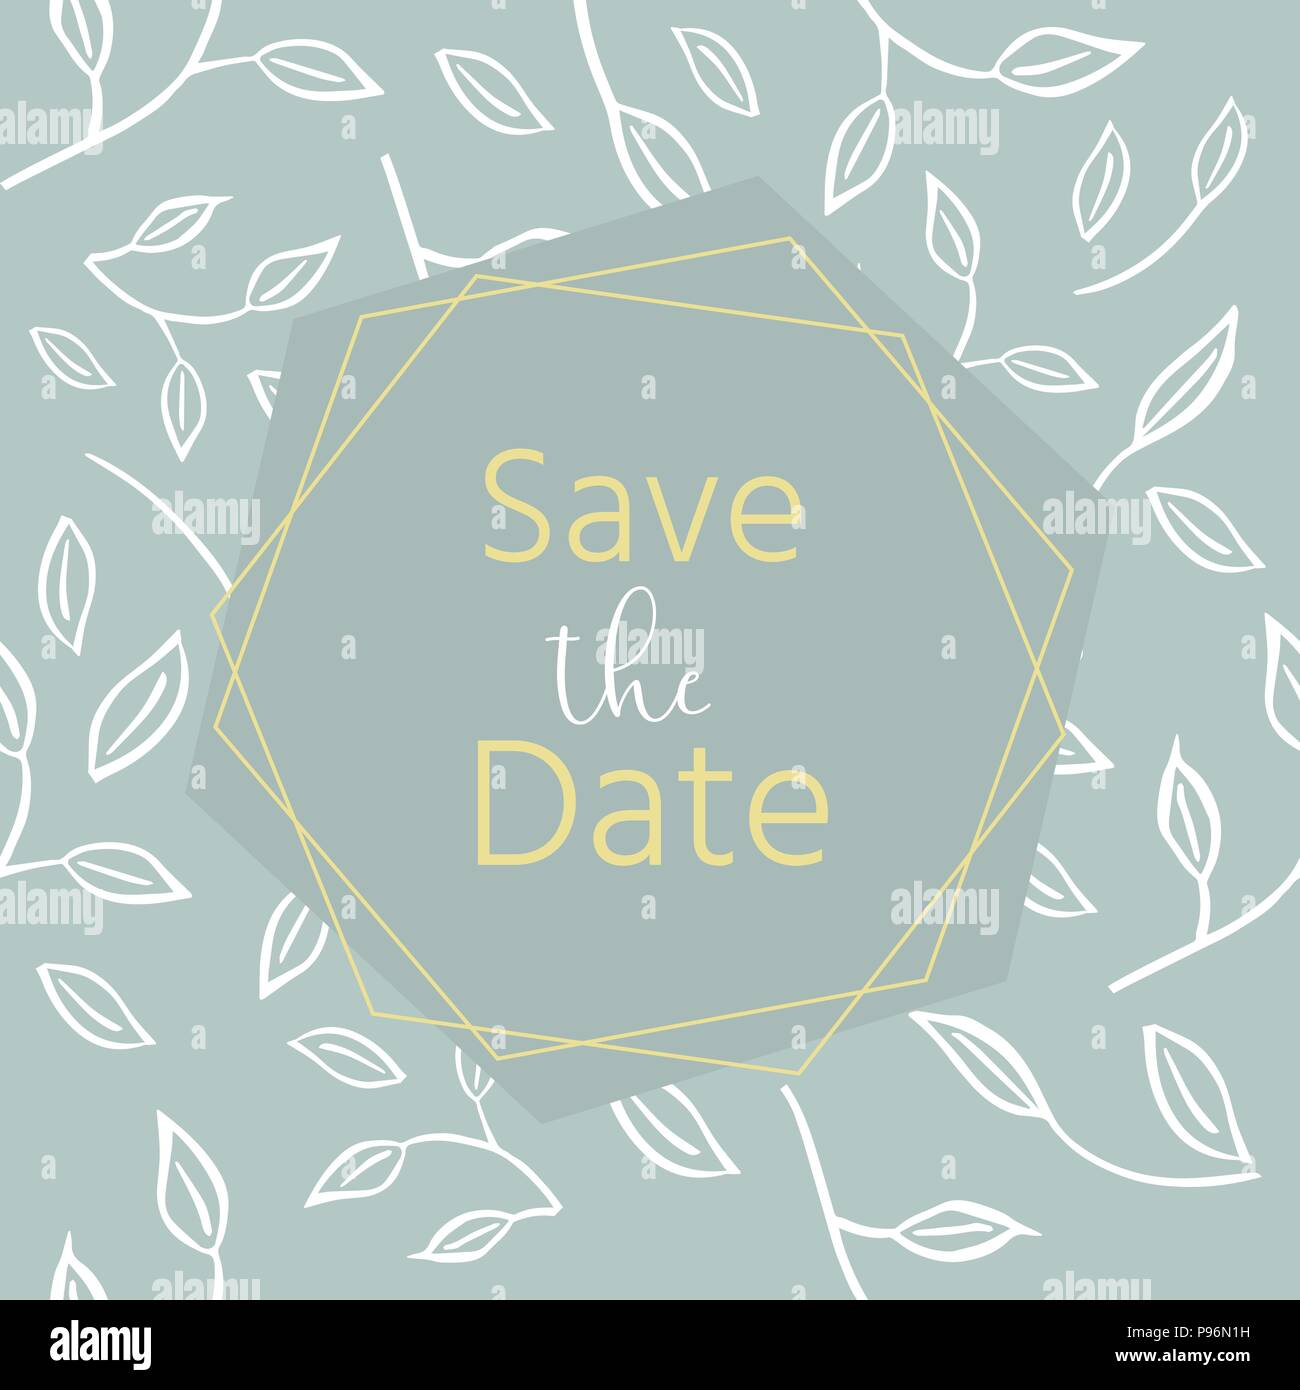 wedding invitation with floral tropical leaves wreath geometrical